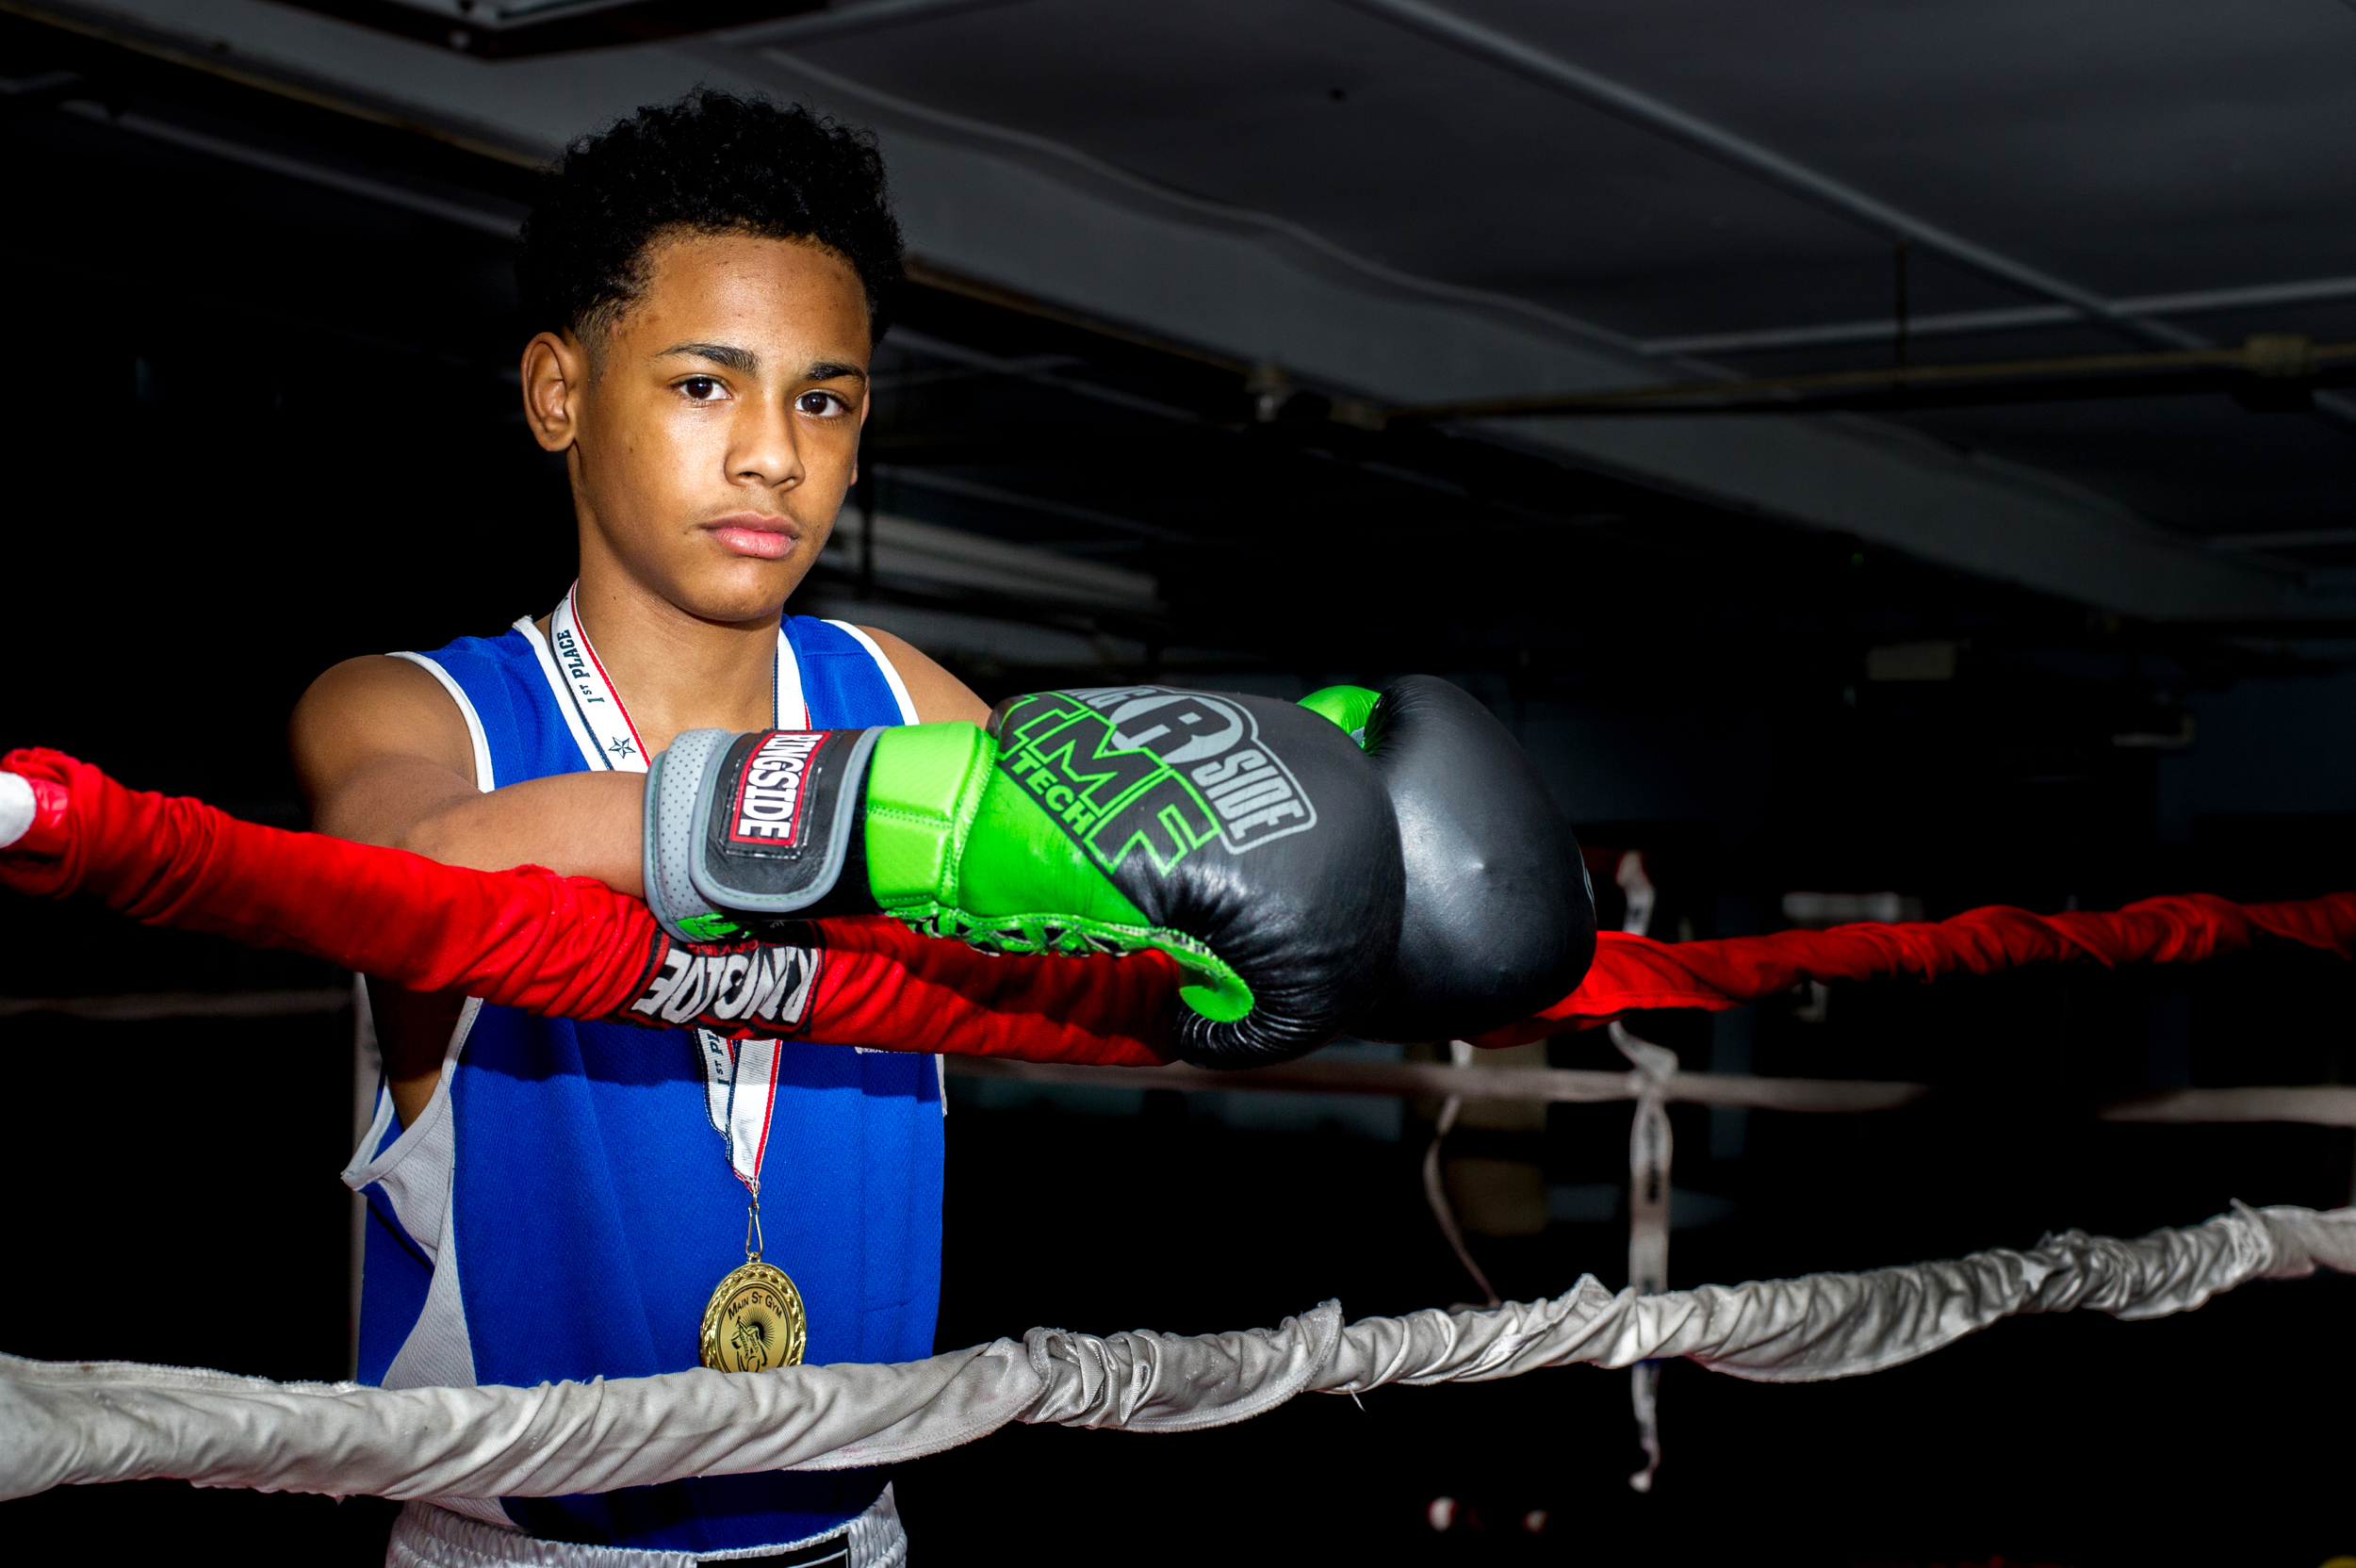 Luis LaBoy poses for a portrait at East Reading Boxing Club on May 18, 2016, in Reading, Pennsylvania. LaBoy has only been boxing for two years but has already won a regional title.